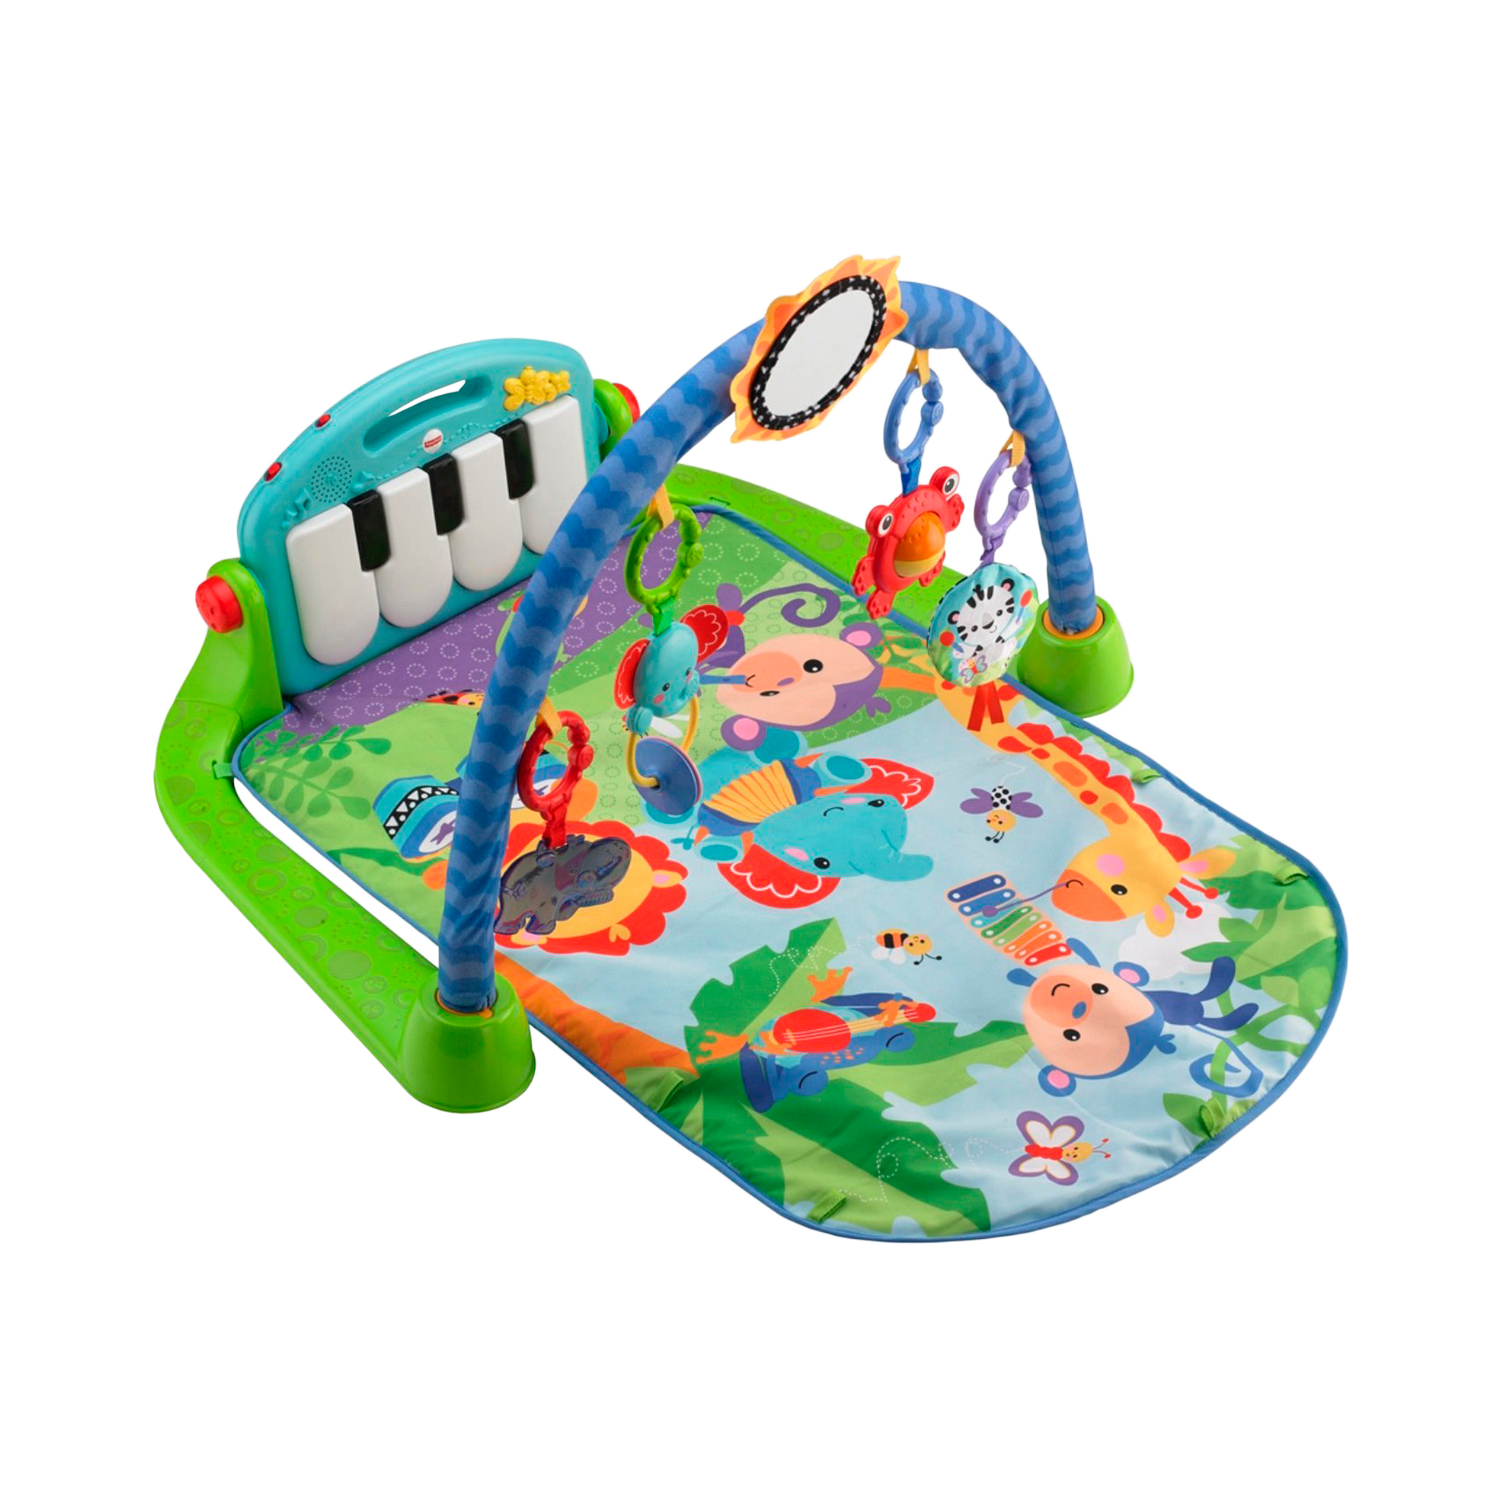 Best Play Gyms And Playmats Of 2020 Baby Musical Toys Fisher Price Baby Toys Fisher Price Baby